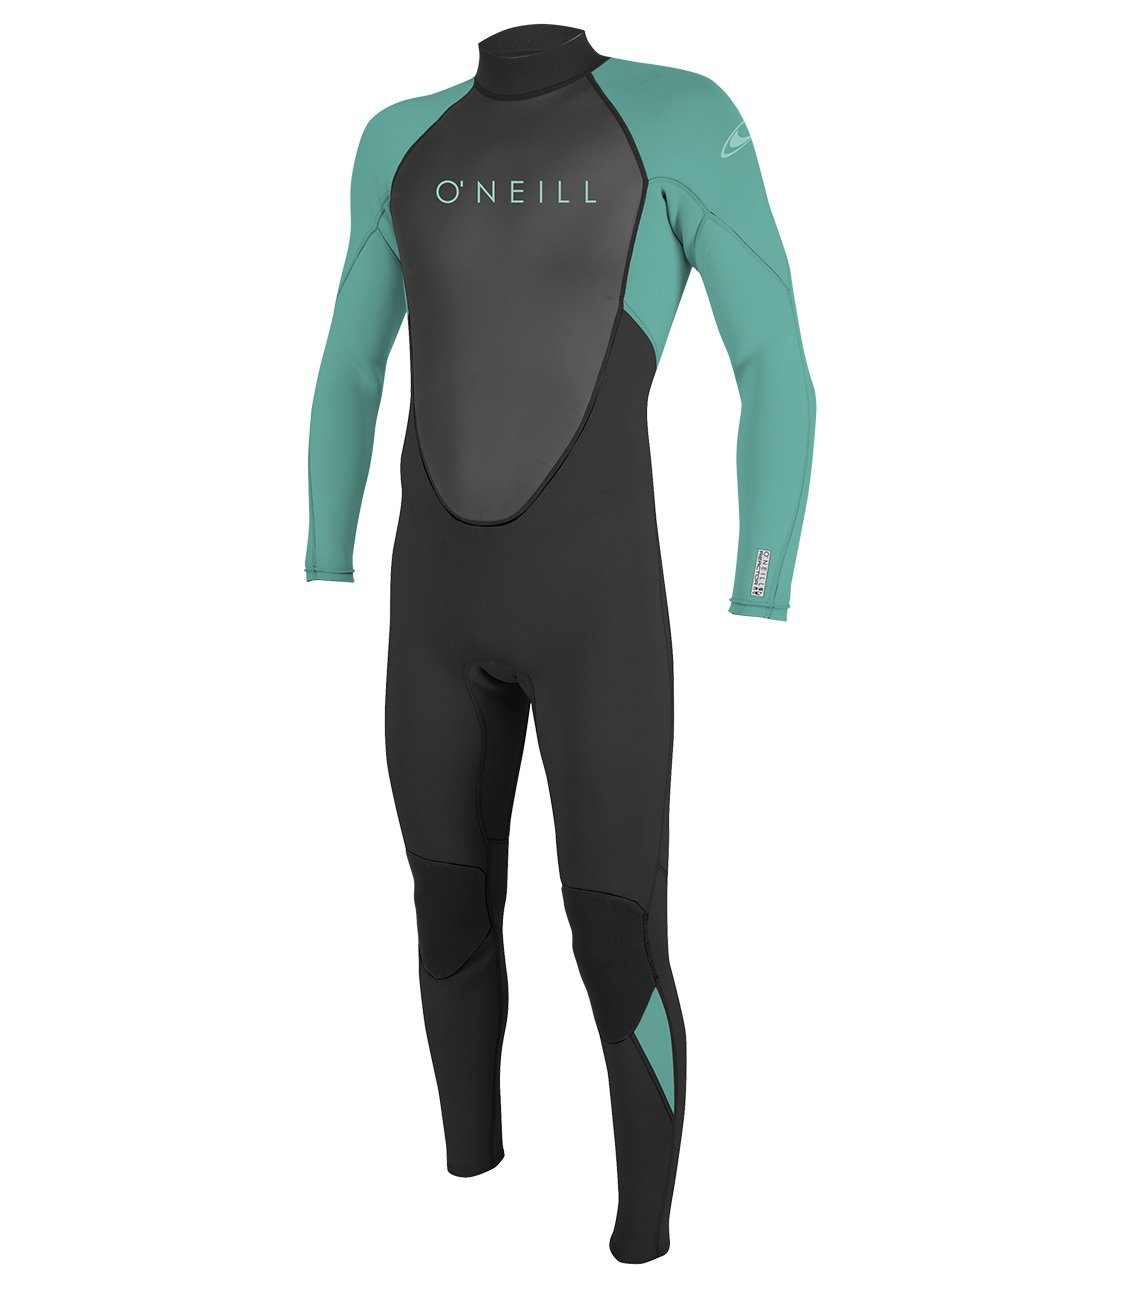 O'Neill Youth Reactor-2 3/2mm Back Zip Full Wetsuit, Black/Aqua, 16 by O'Neill Wetsuits